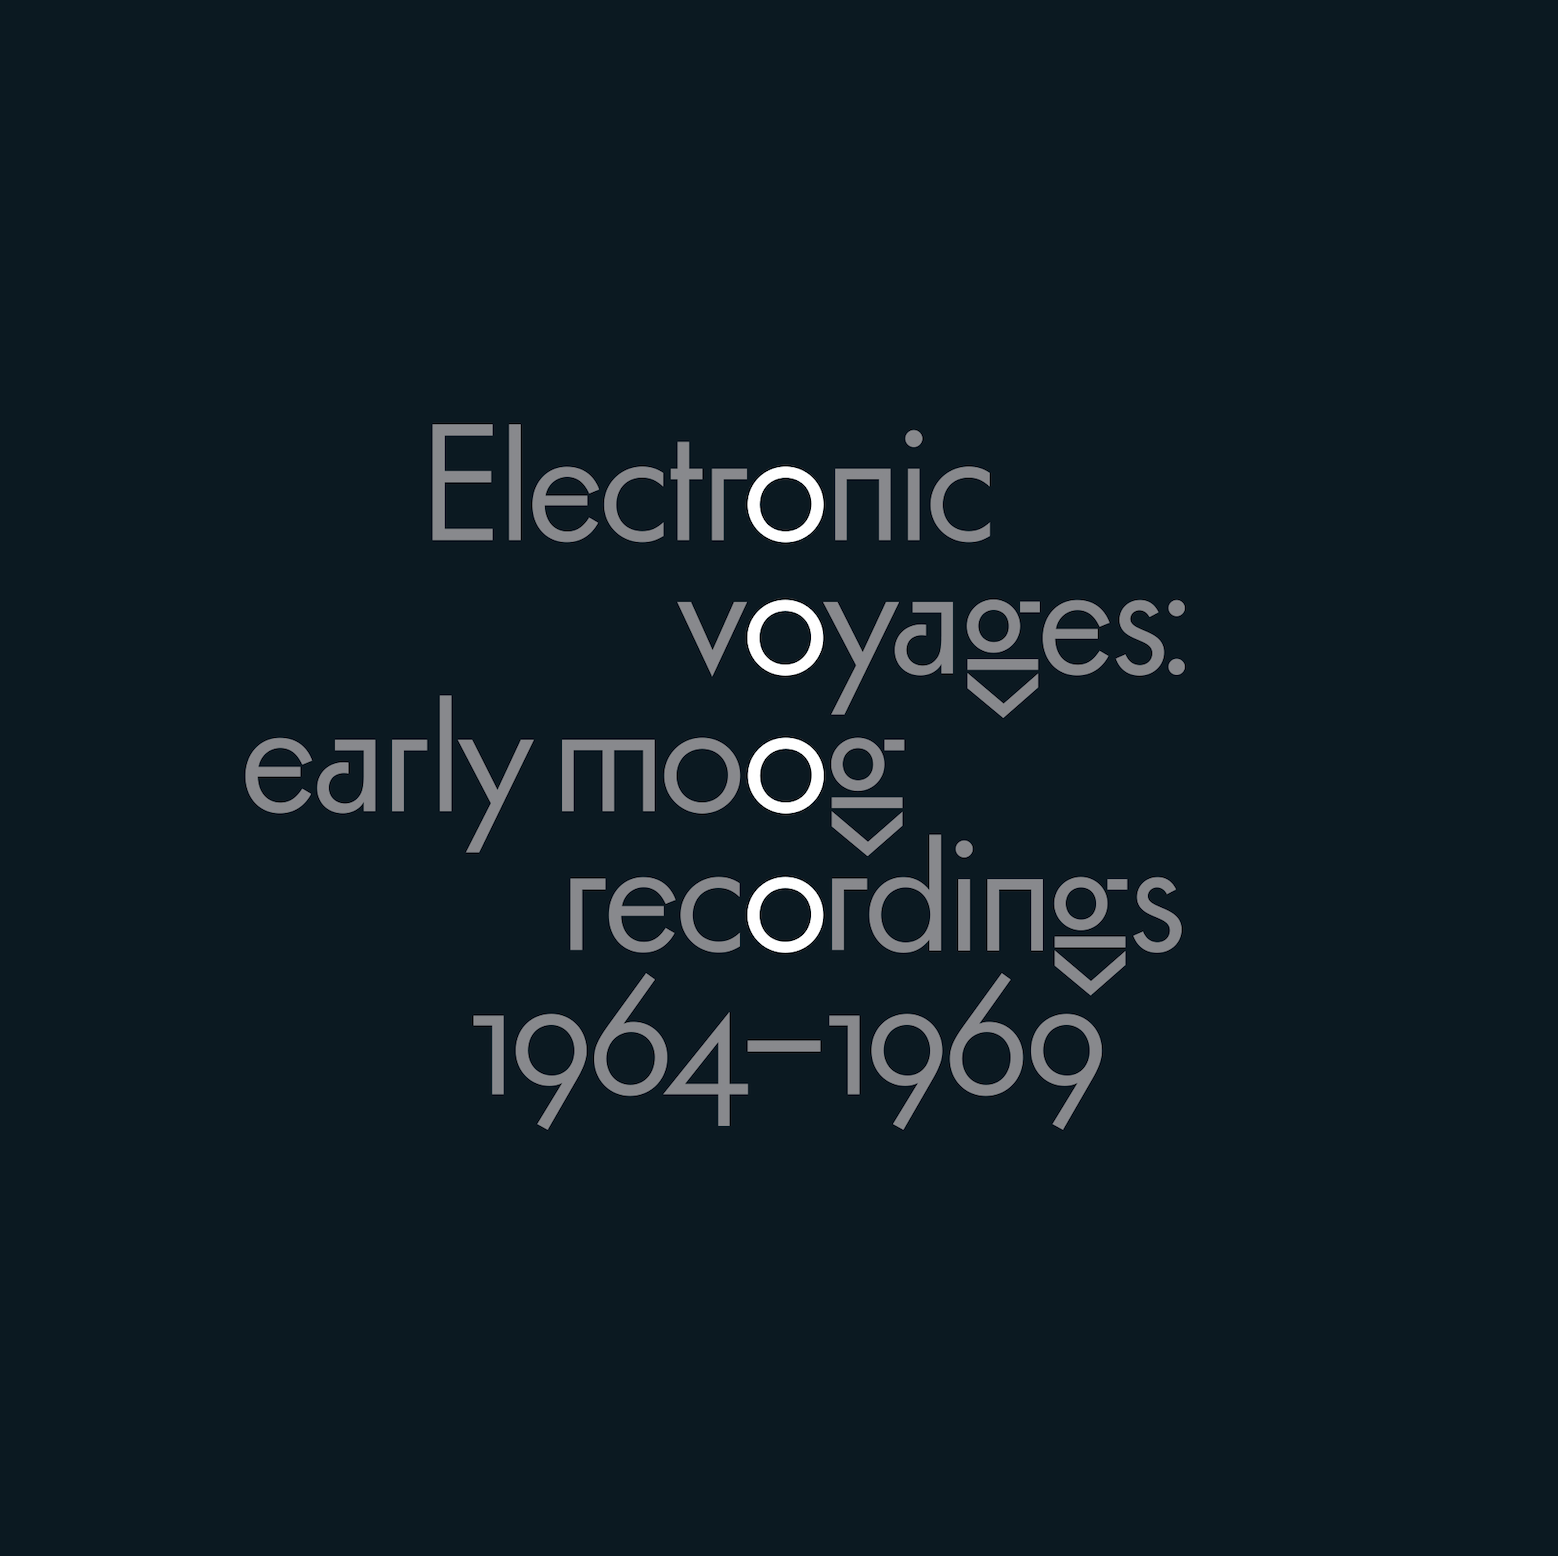 Electronic Voyages: Early Moog Recordings 1964-1969